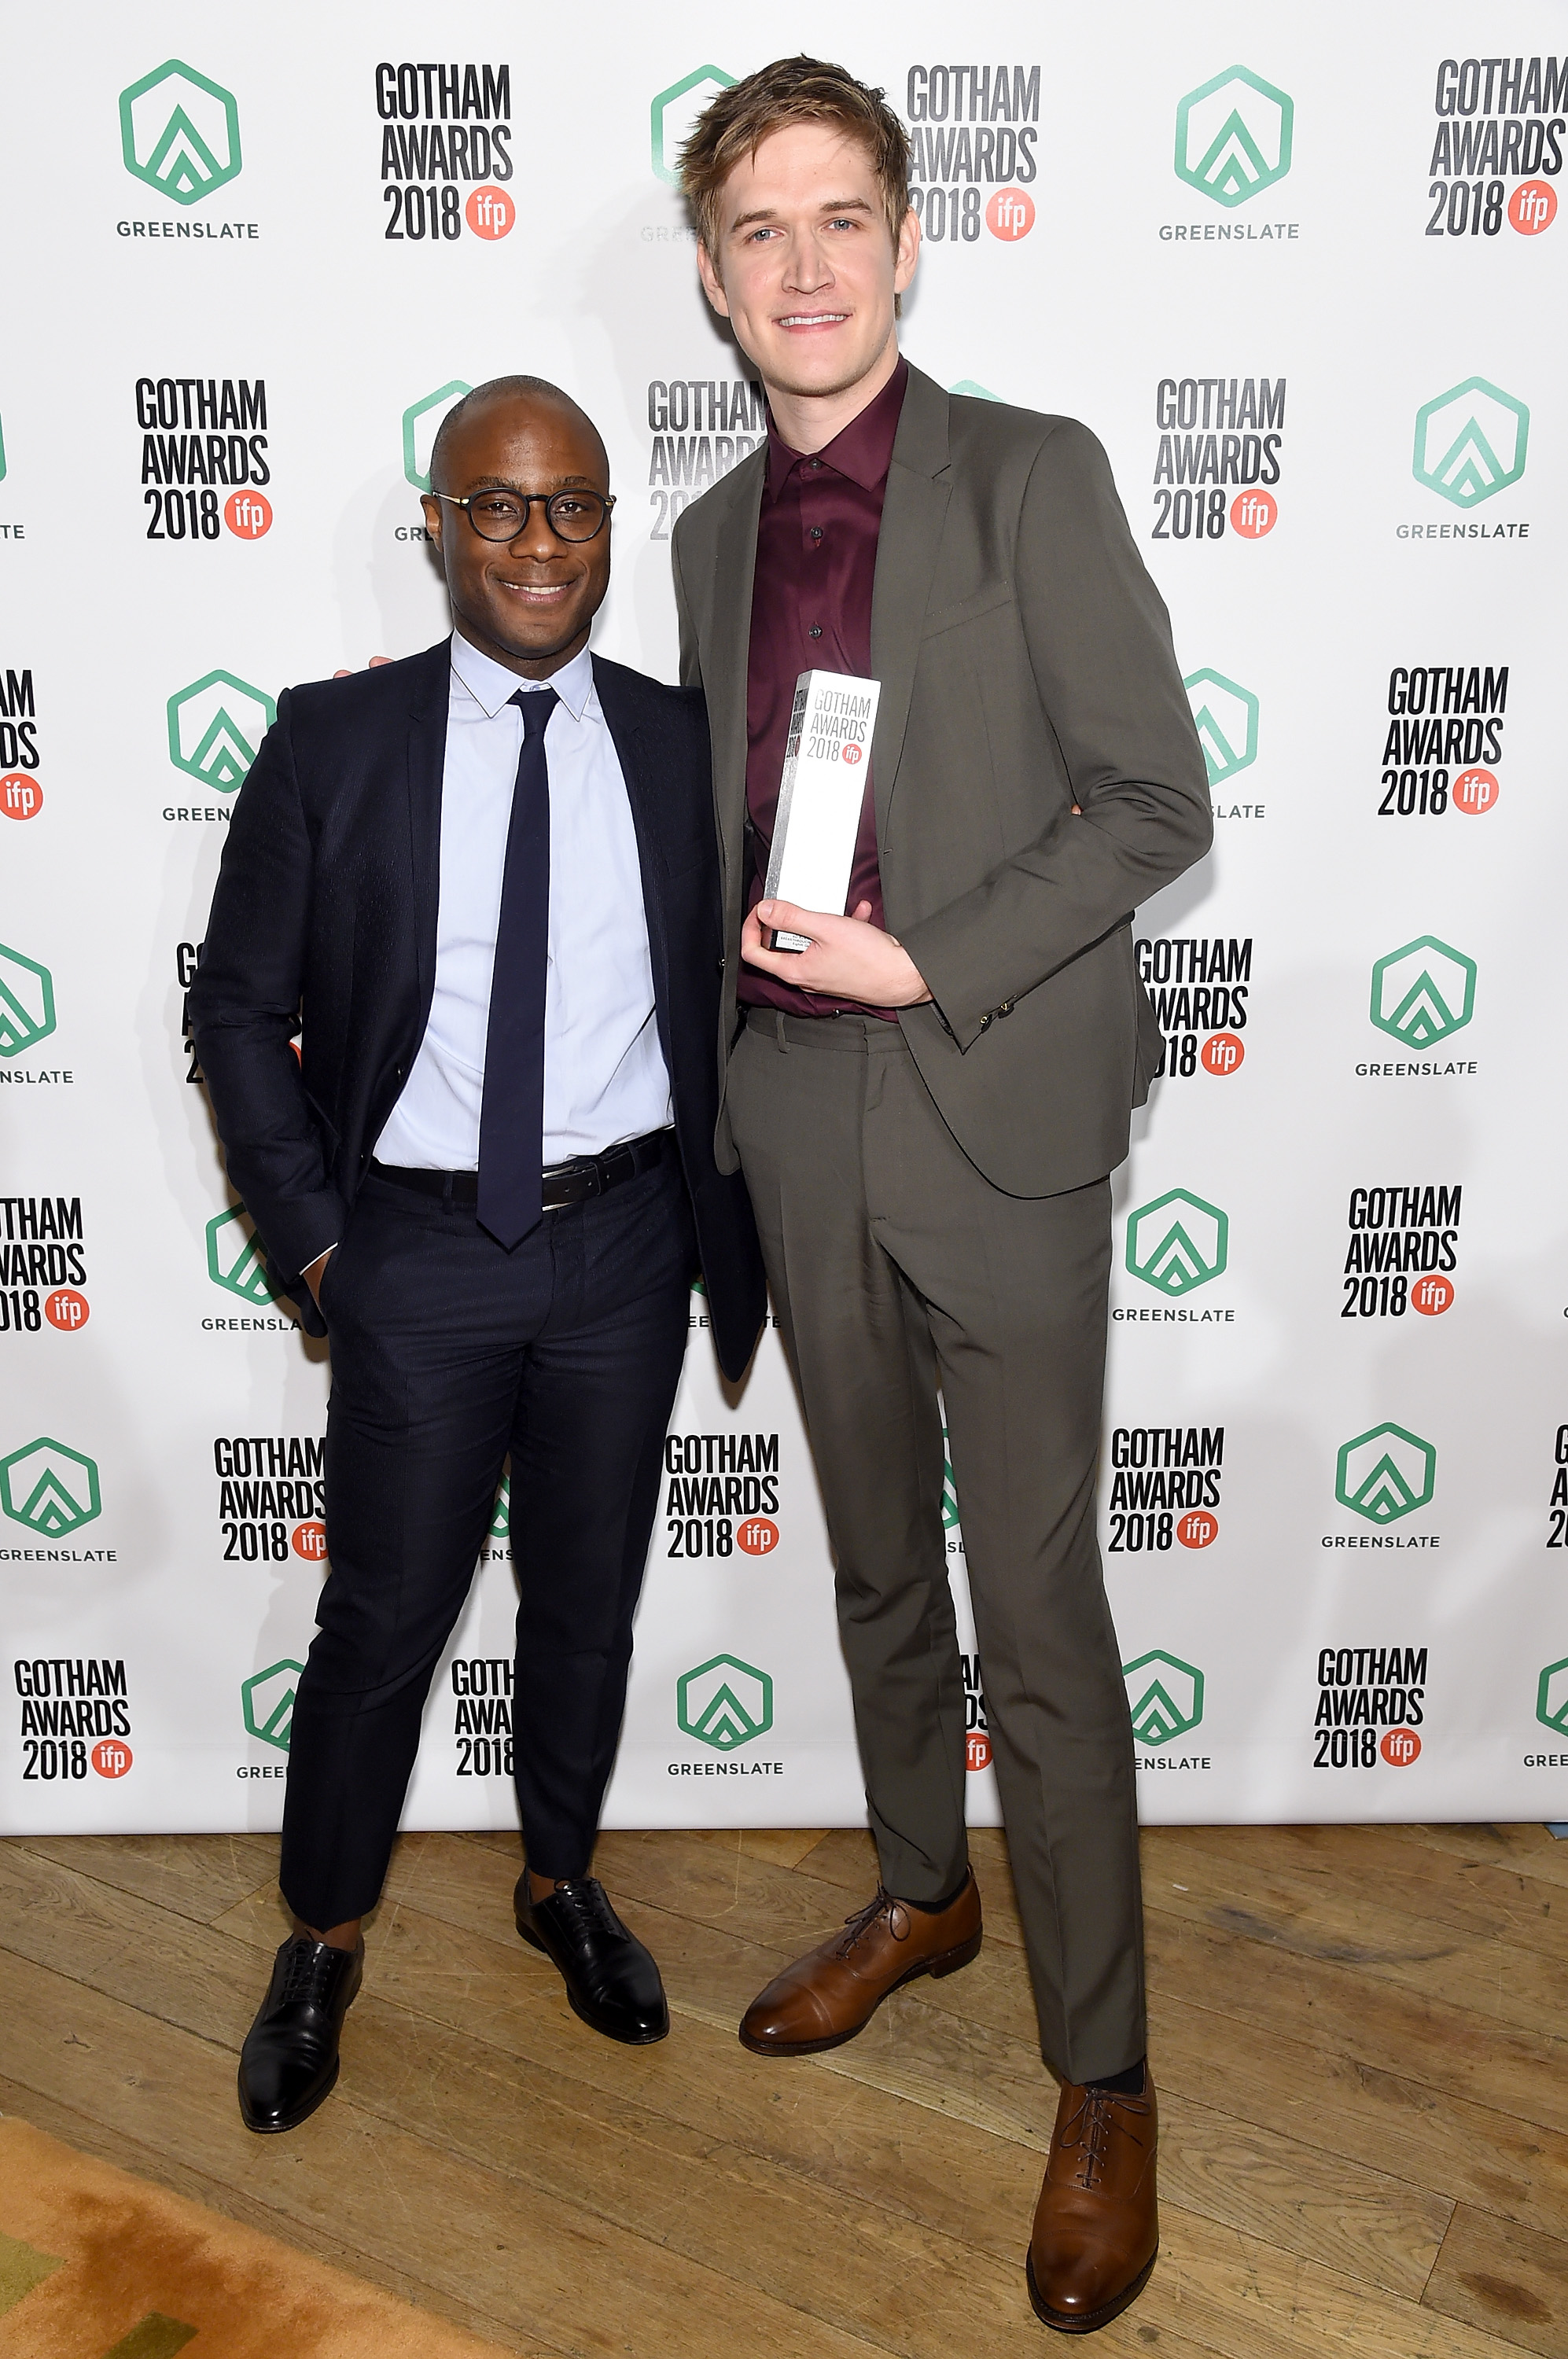 Barry Jenkins and Bo Burnham backstage in the GreenSlate Greenroom during IFP's 28th Annual Gotham Independent Film Awards at Cipriani, Wall Street on November 26, 2018 in New York